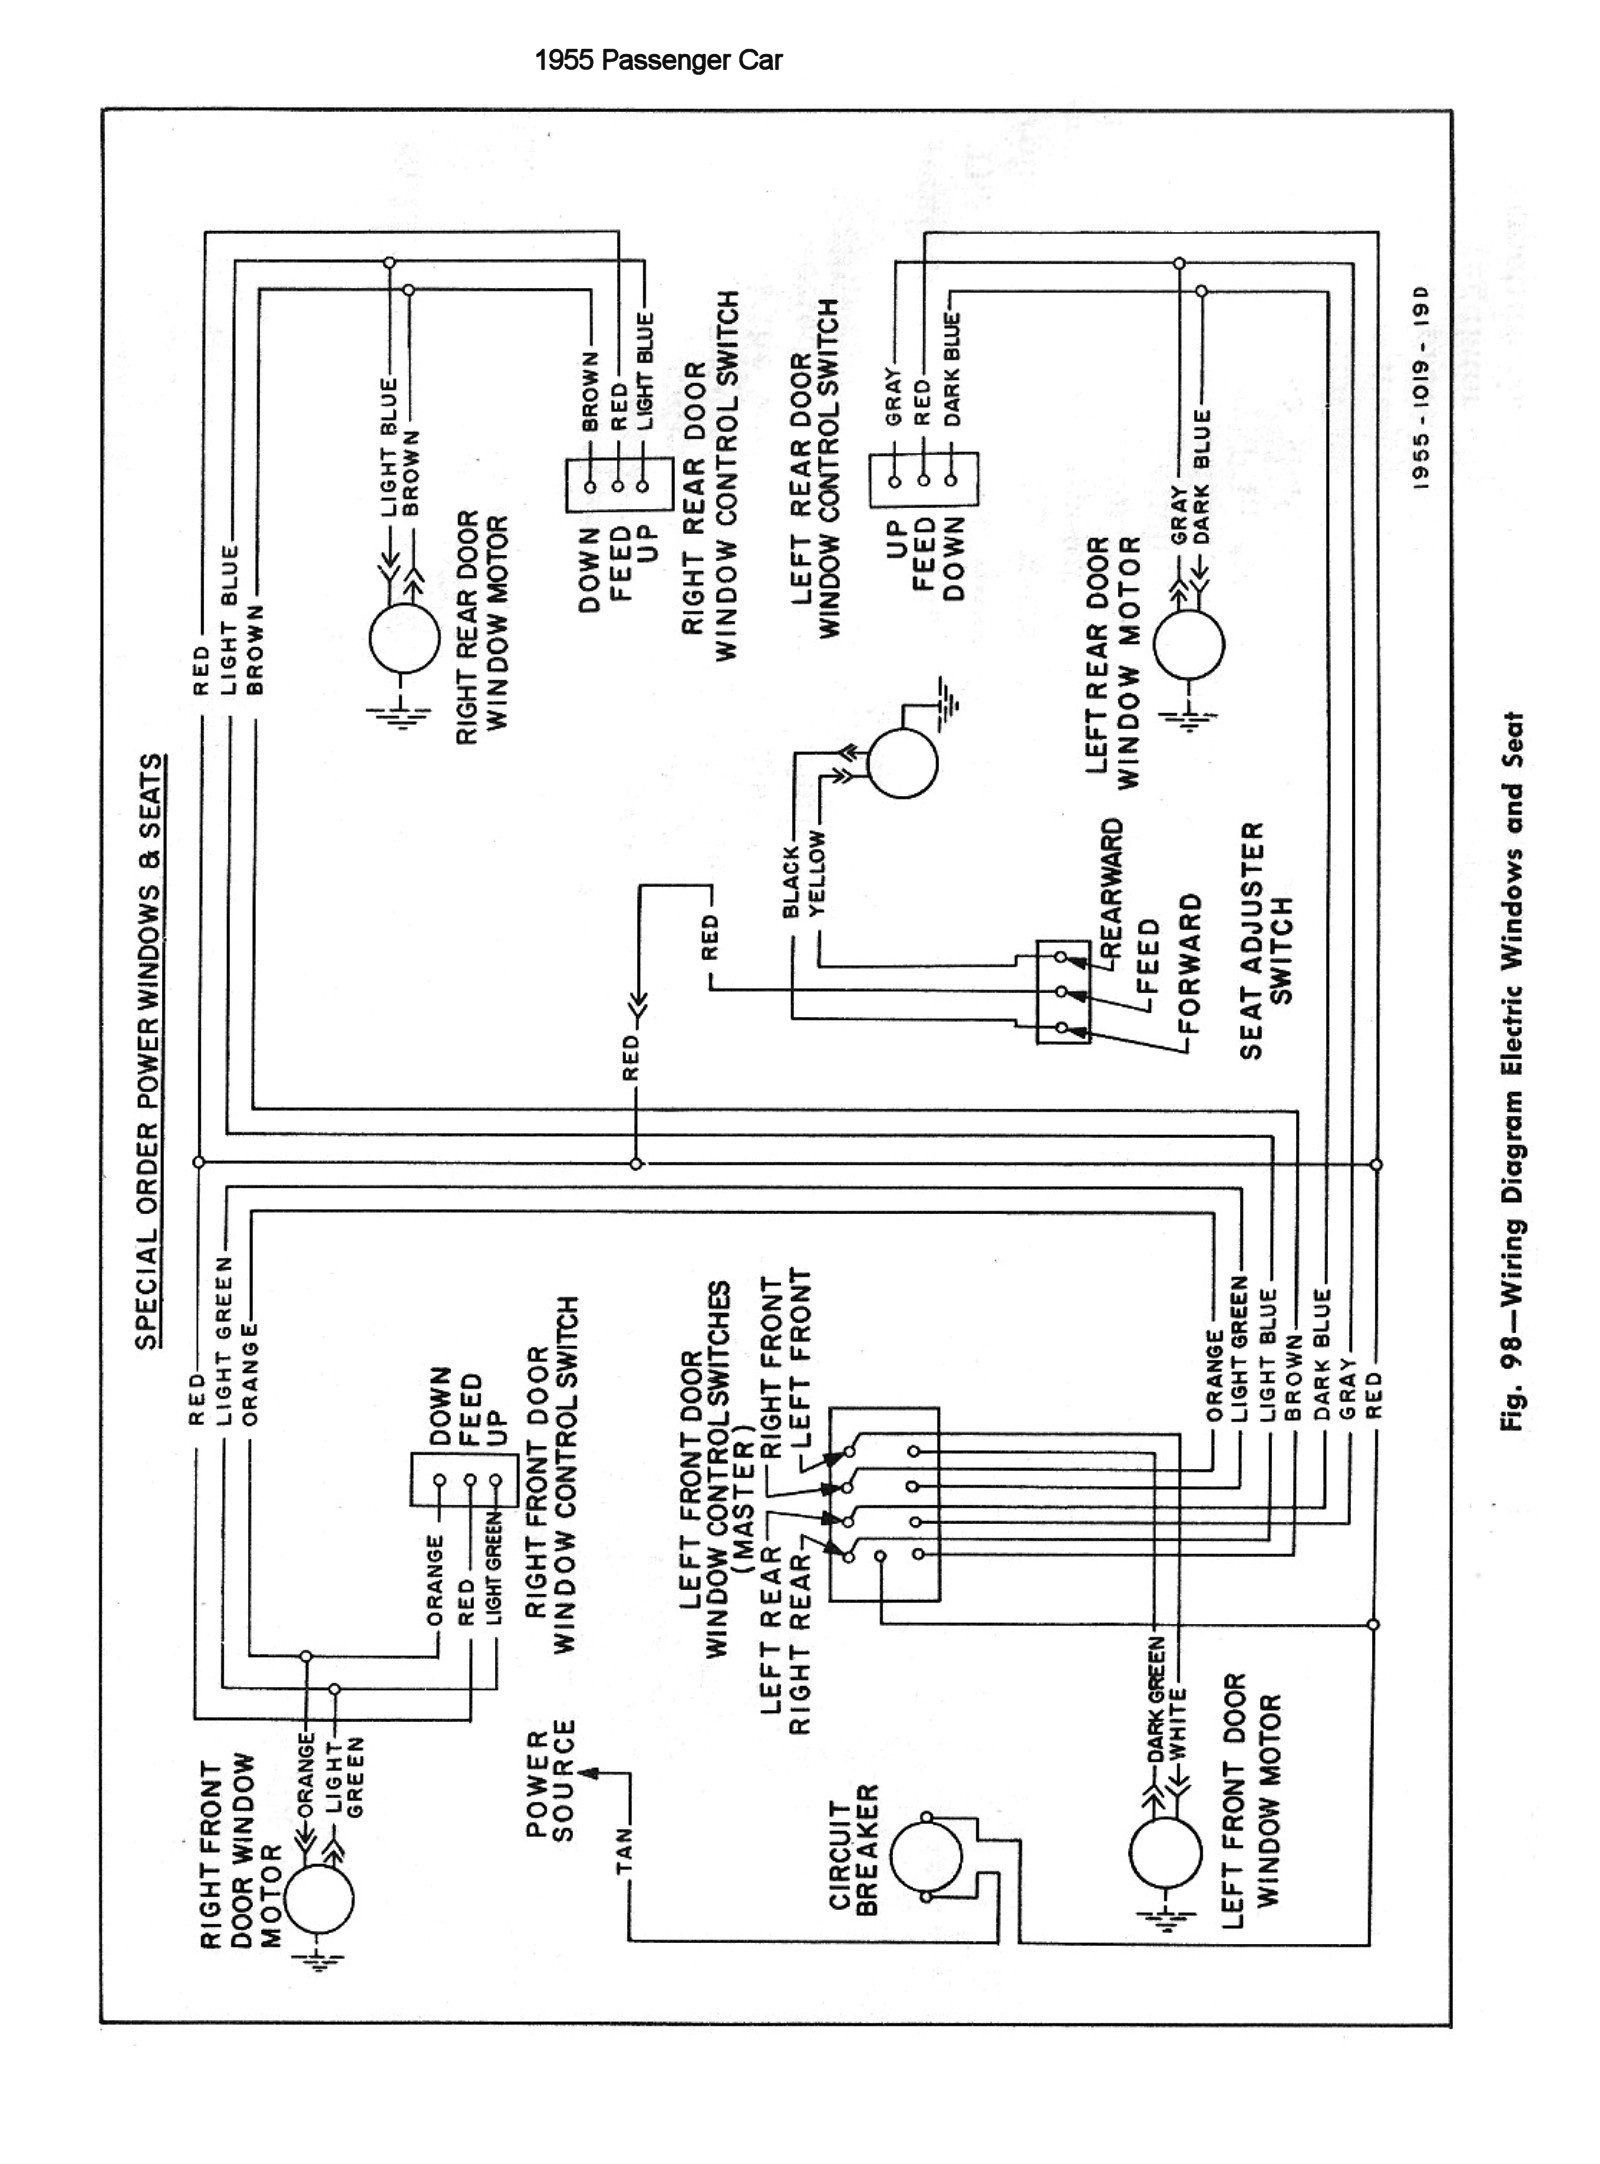 1955 Chevrolet Turn Signal Wiring Diagram Will Be A Jeep Cj5 Chevy Wiringdiagram Org Rh Pinterest Com